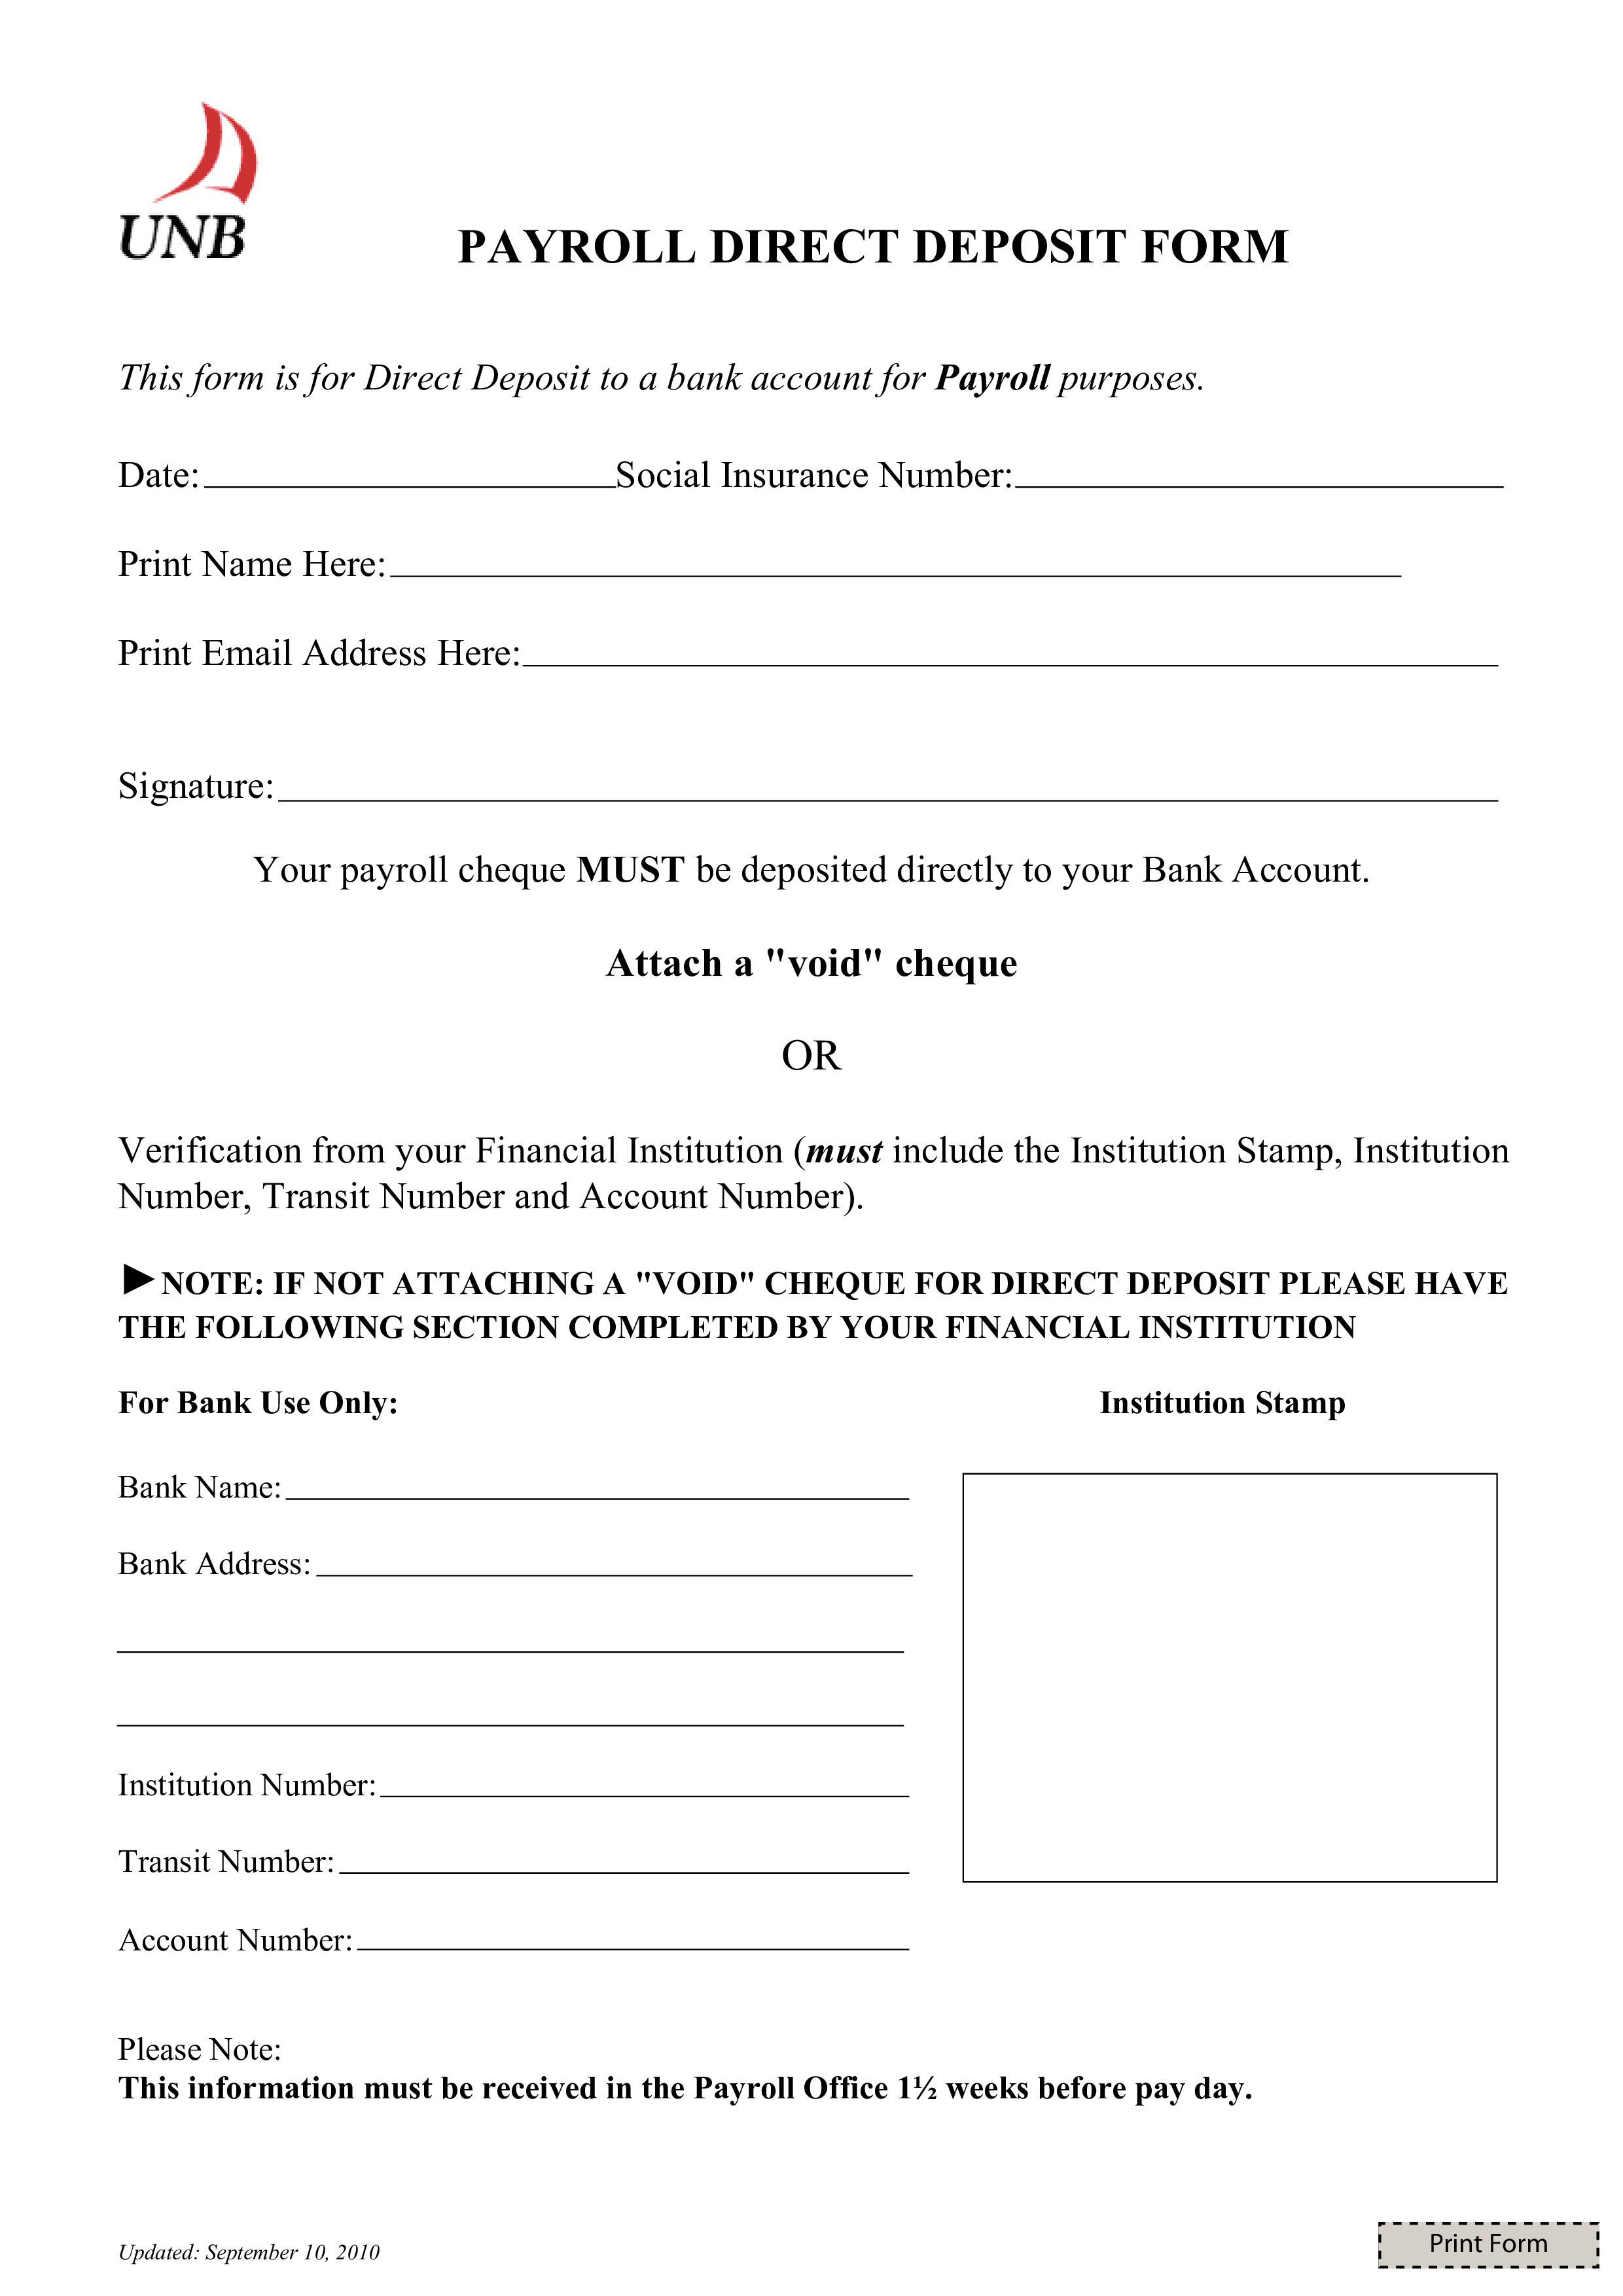 003 Magnificent Direct Deposit Form Template High Definition  Multiple Account Ach AuthorizationFull